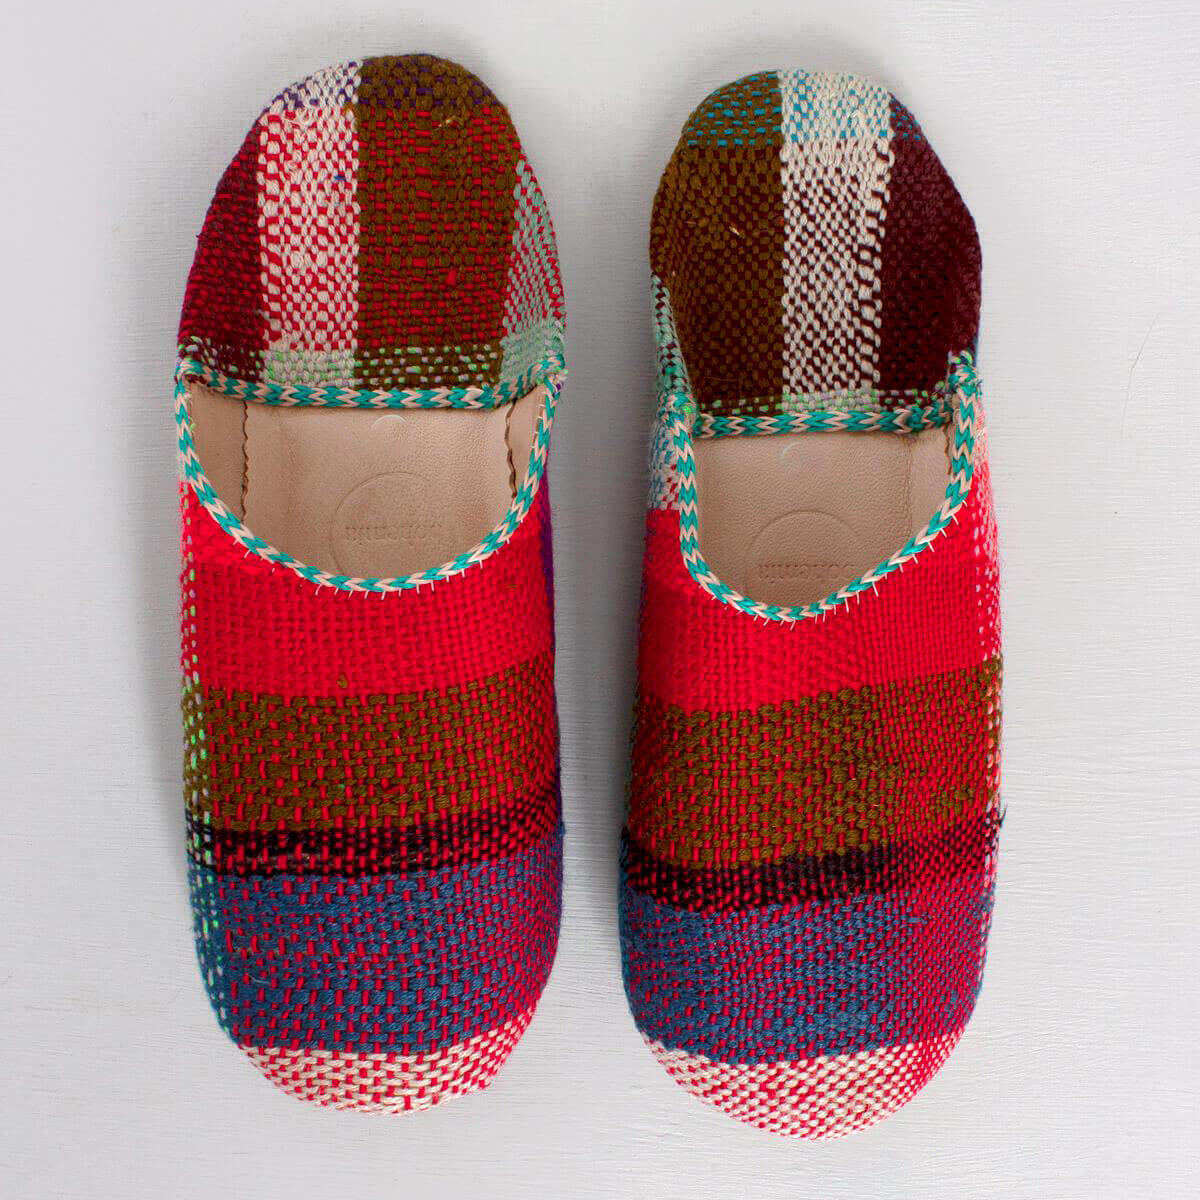 Moroccan Slippers - Plaid